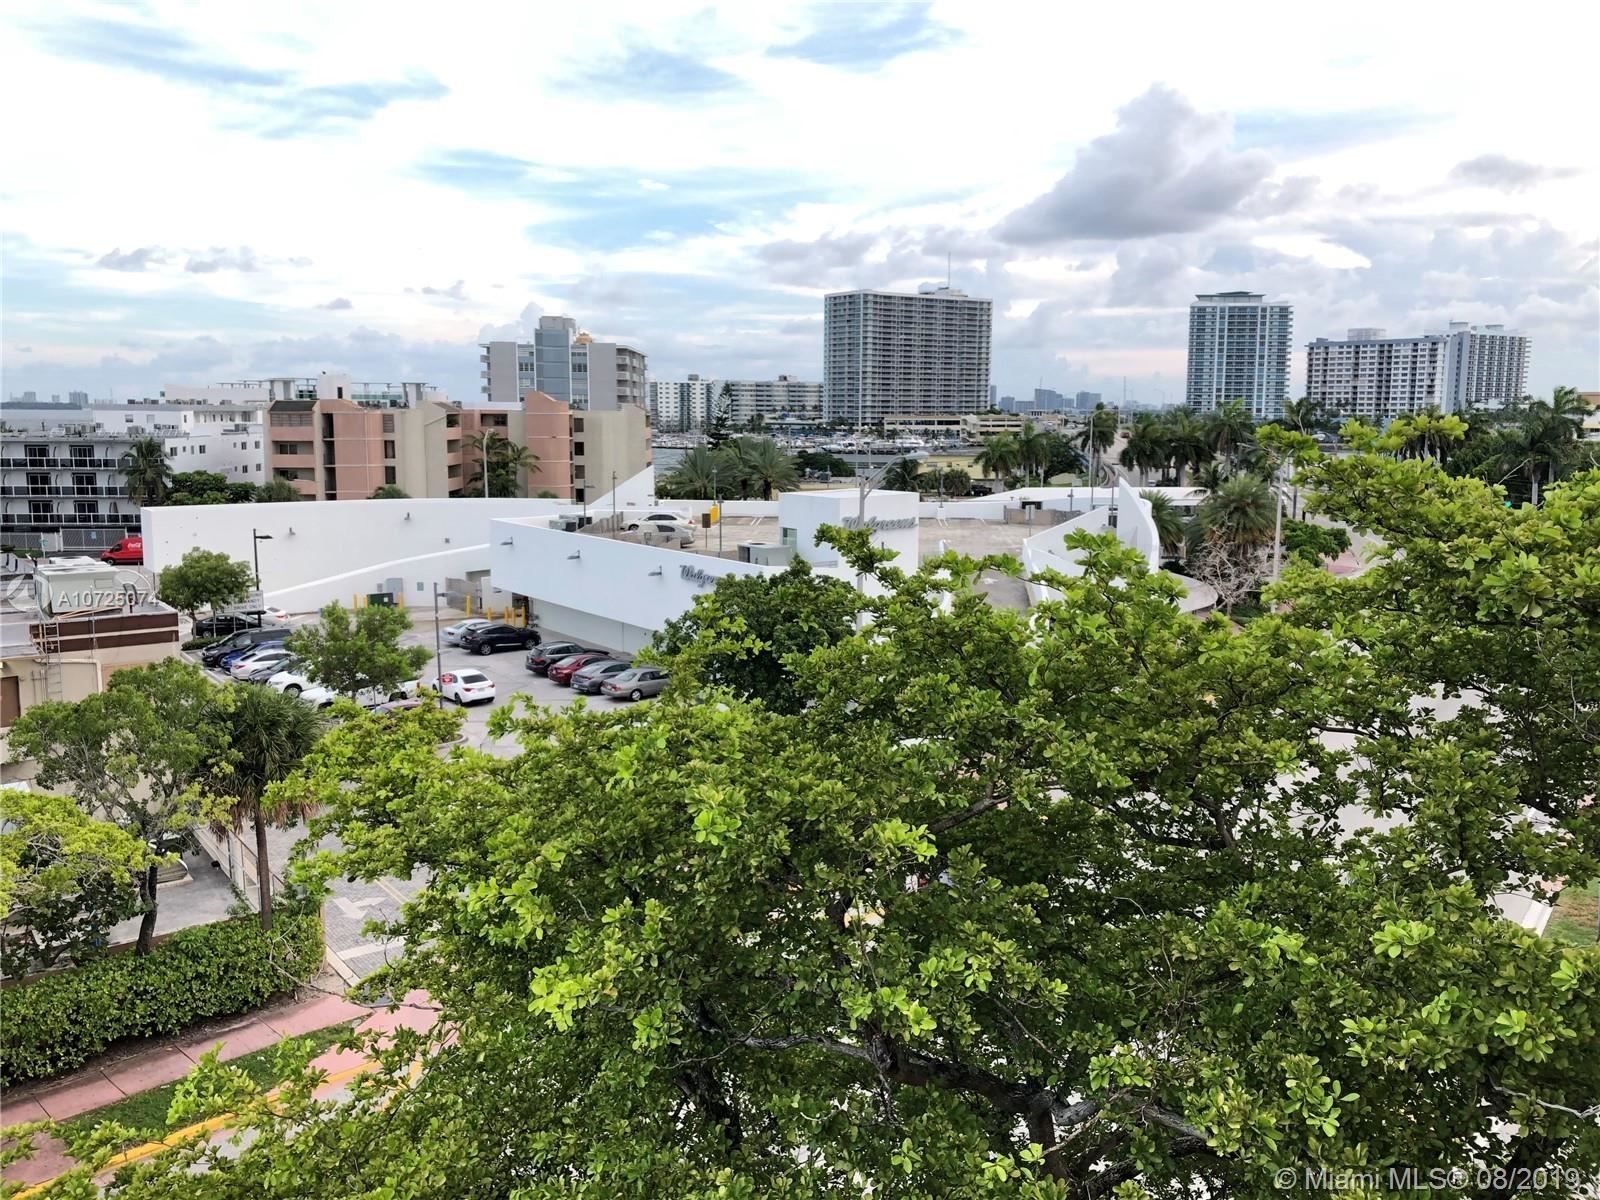 Photo 8 of Listing MLS a10725074 in 1975 Normandy Dr #504 Miami Beach FL 33141